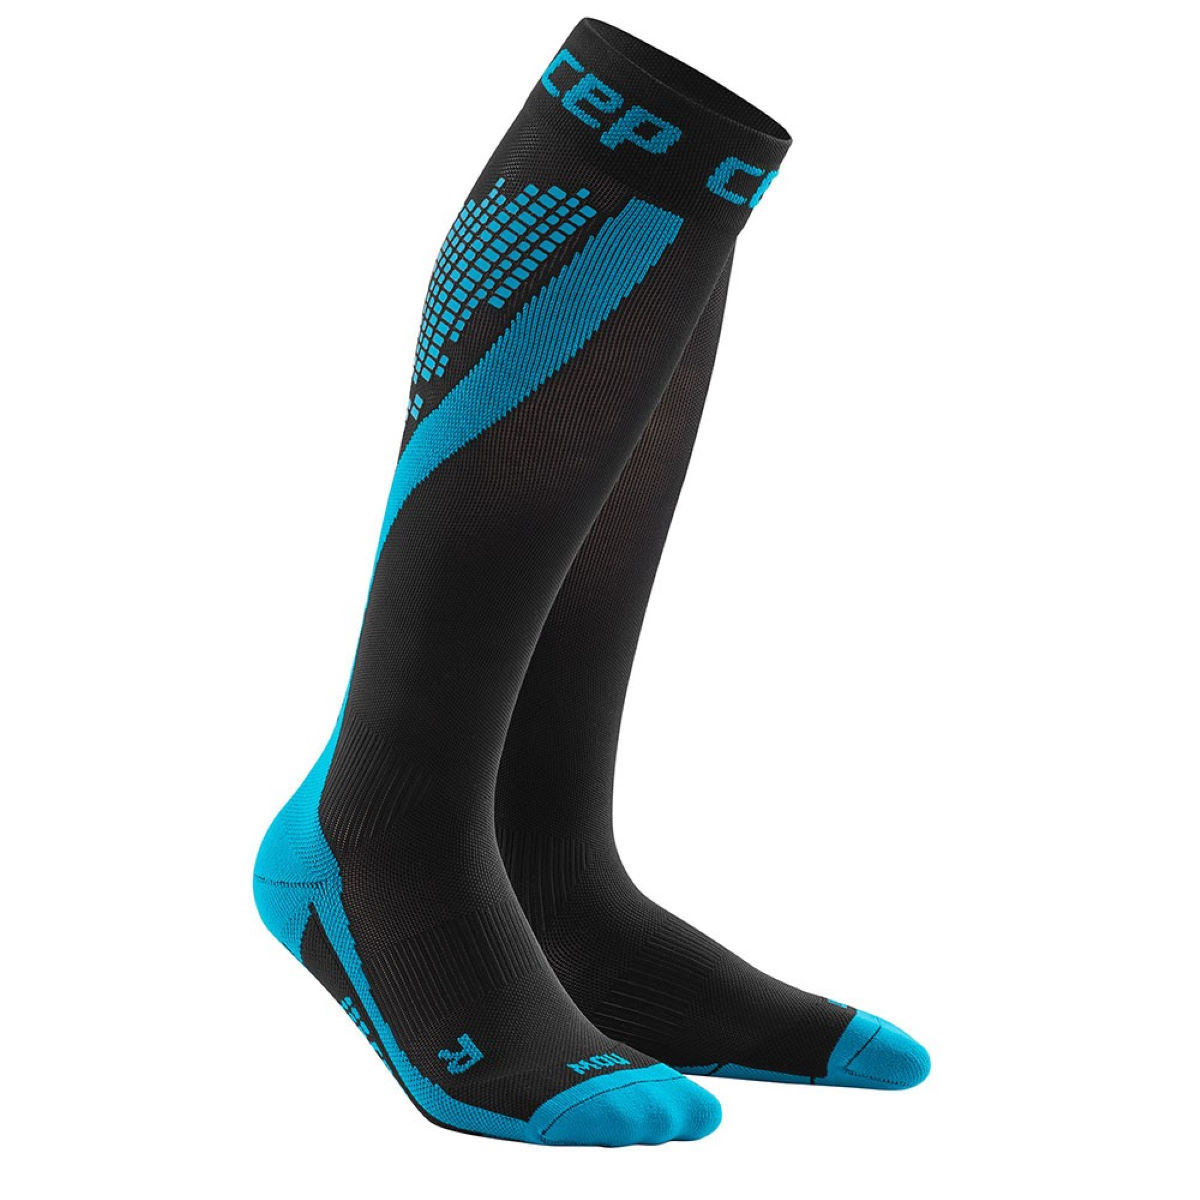 Cep nighttech socks internal blue reflective wp5l332 0